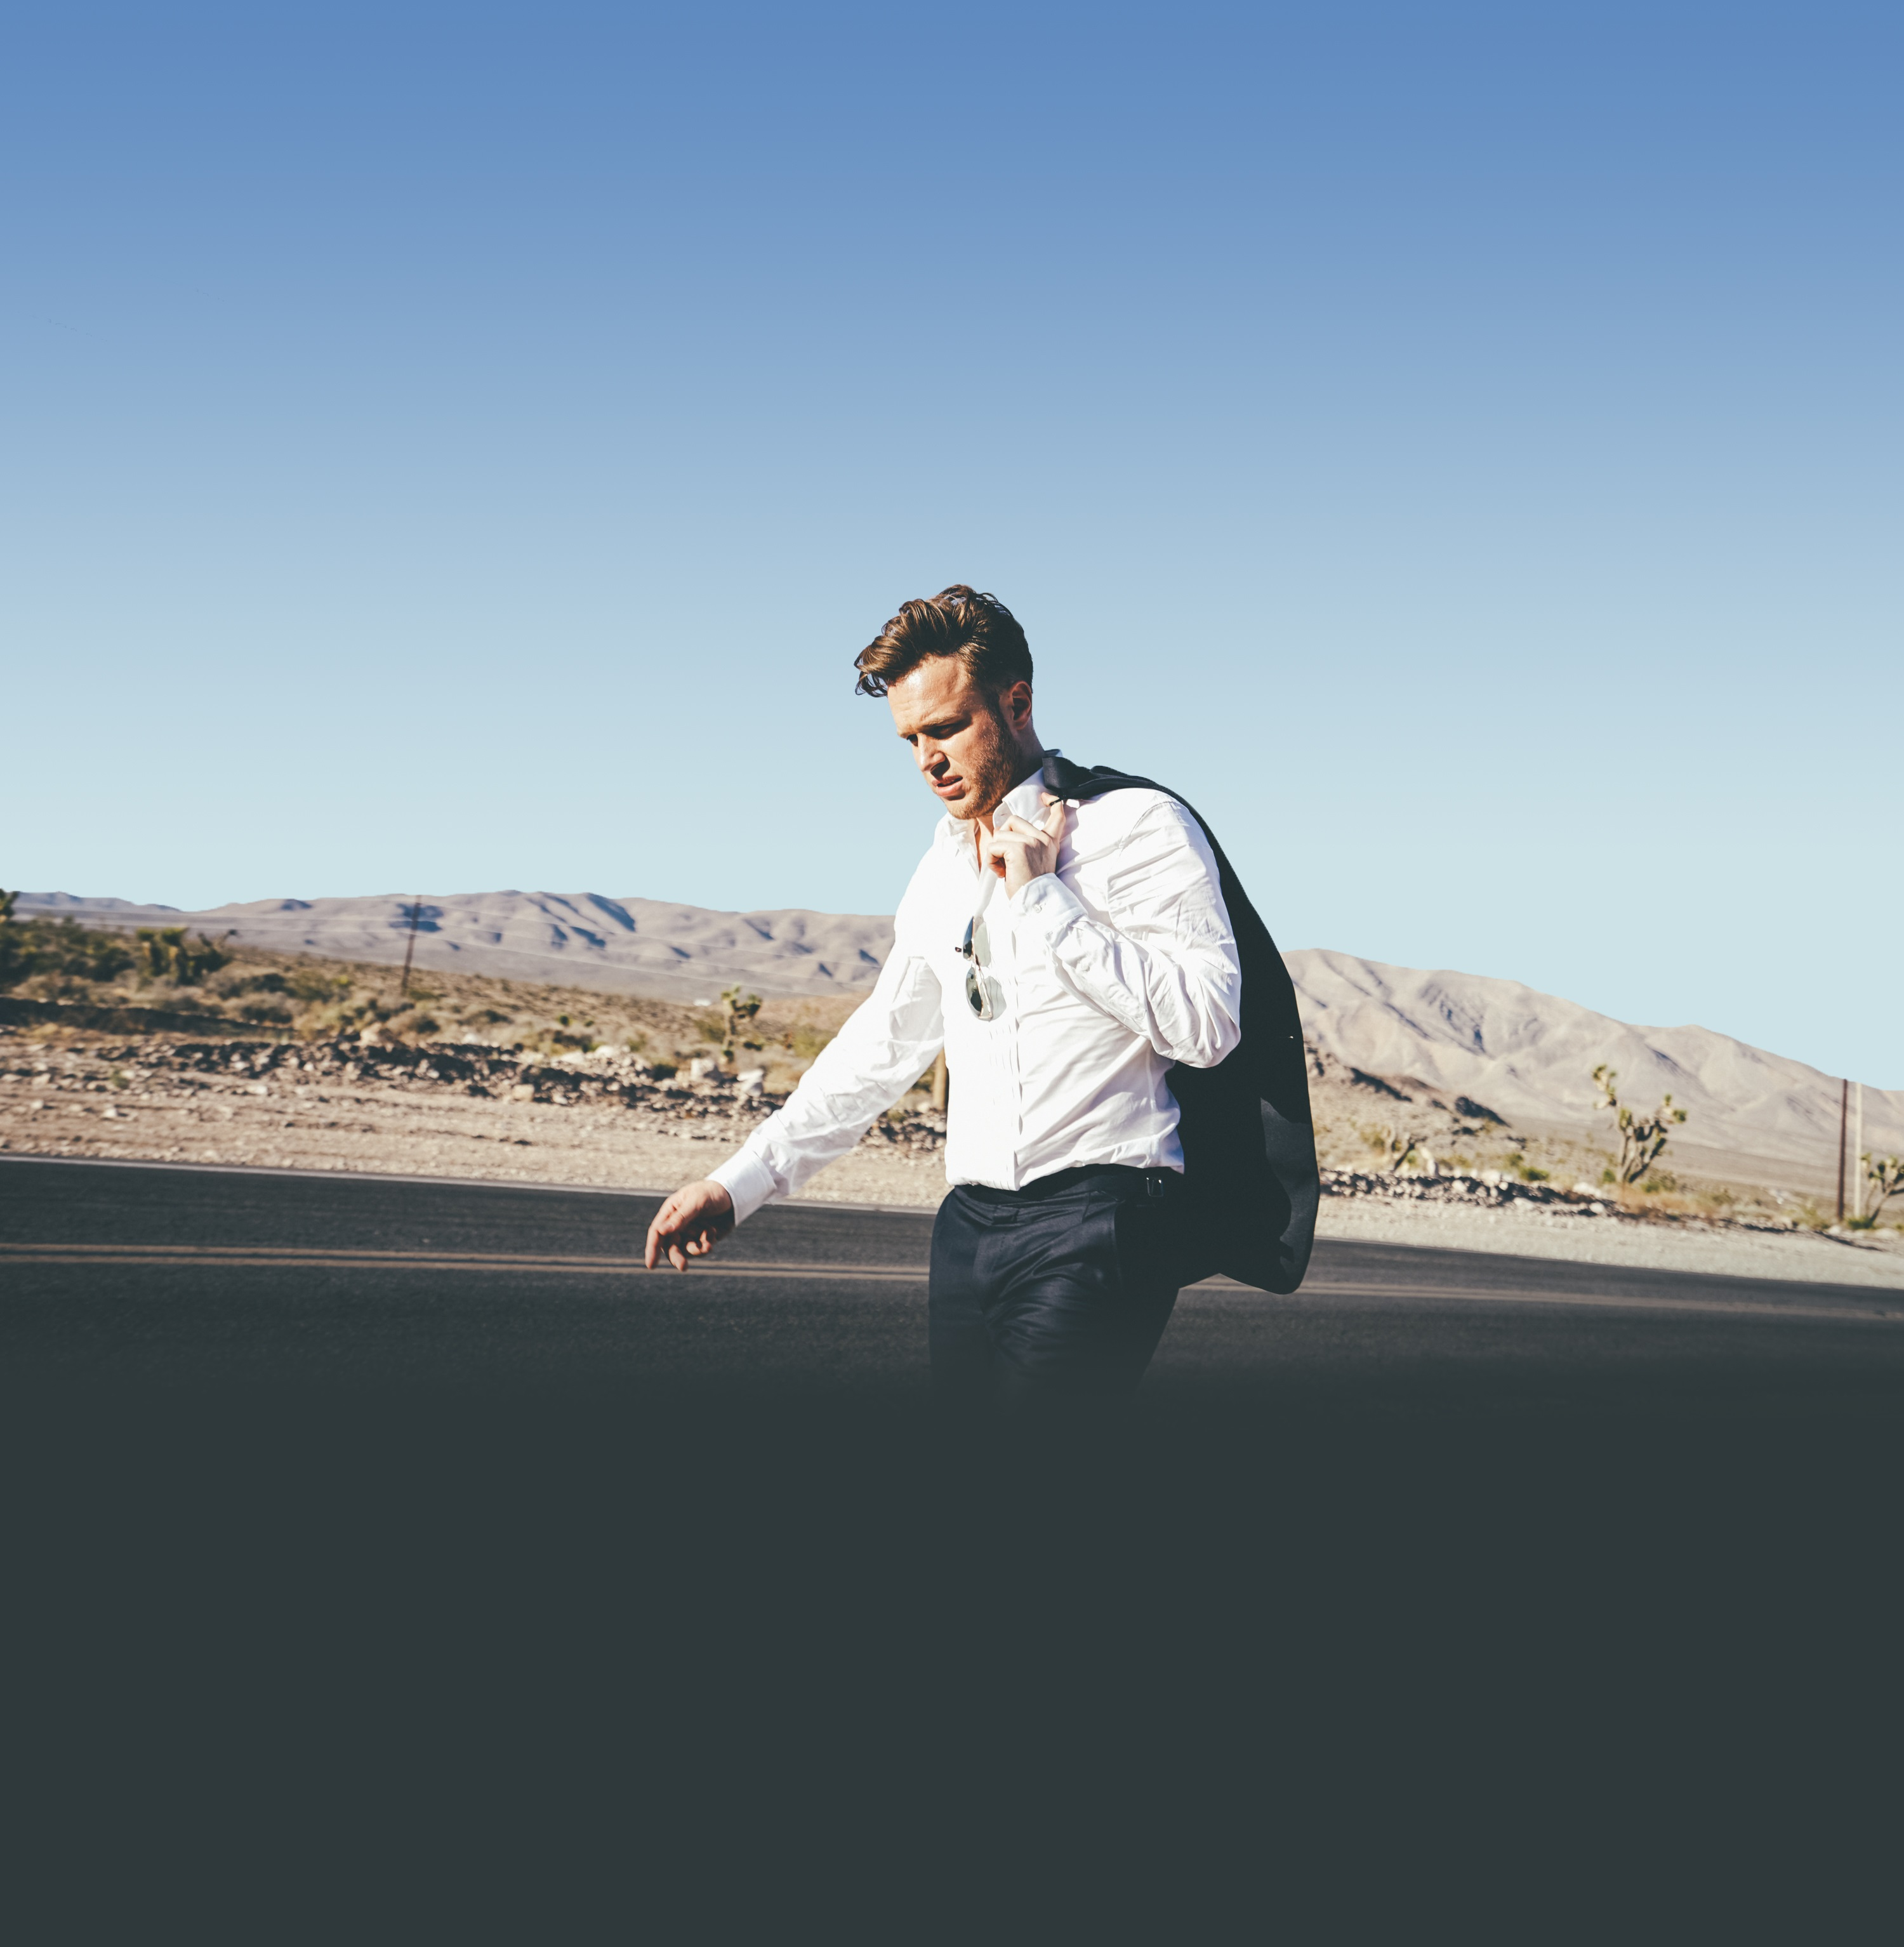 Olly Murs - web page image 2